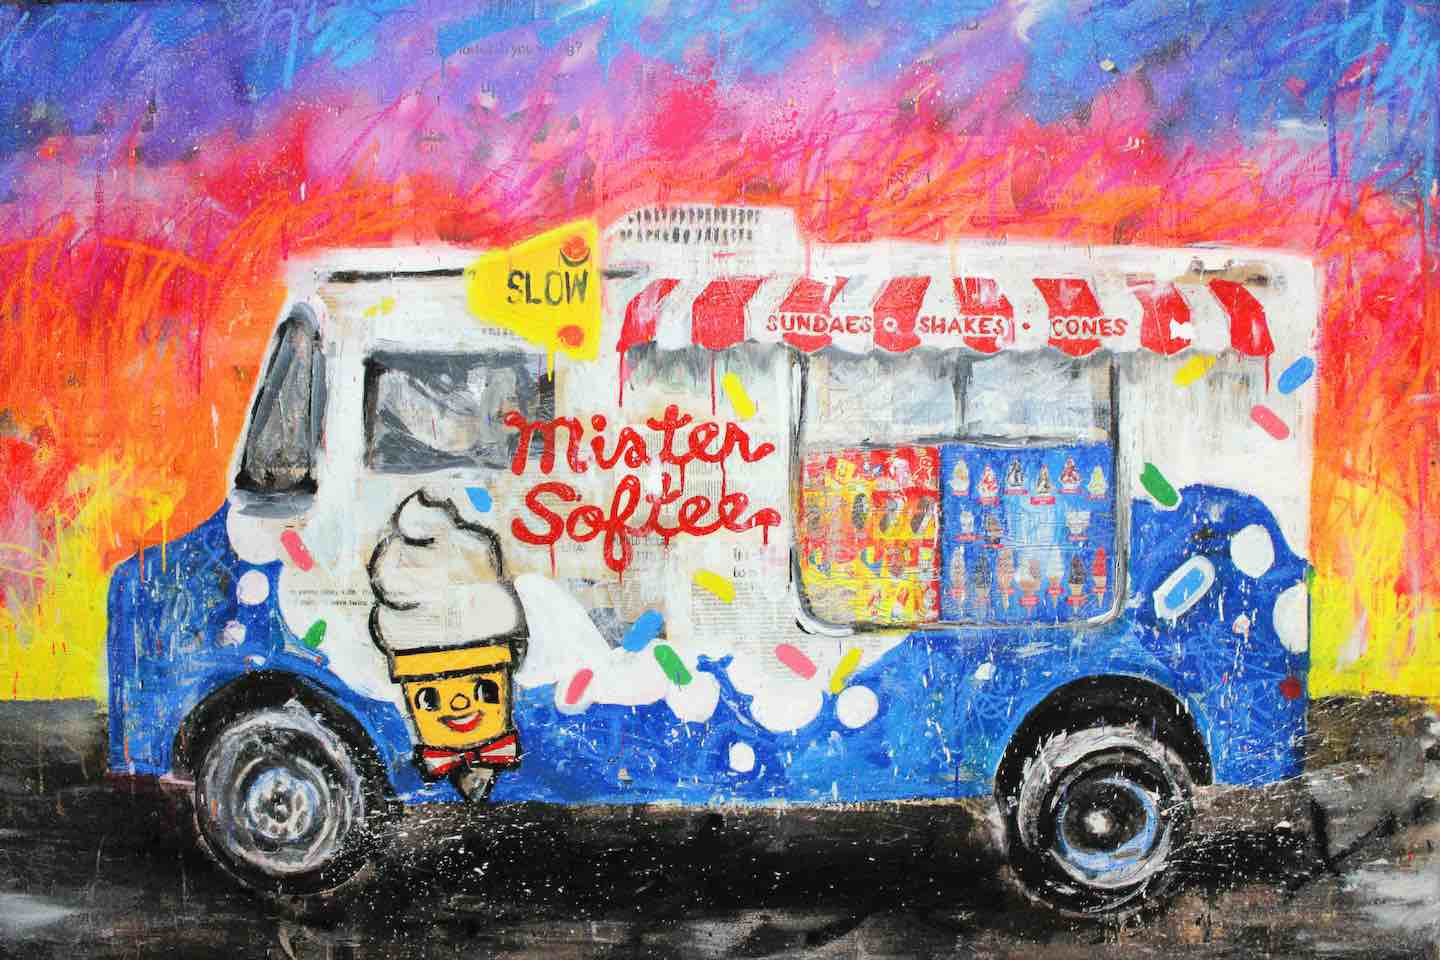 Mr. Softee by Jojo Anavim